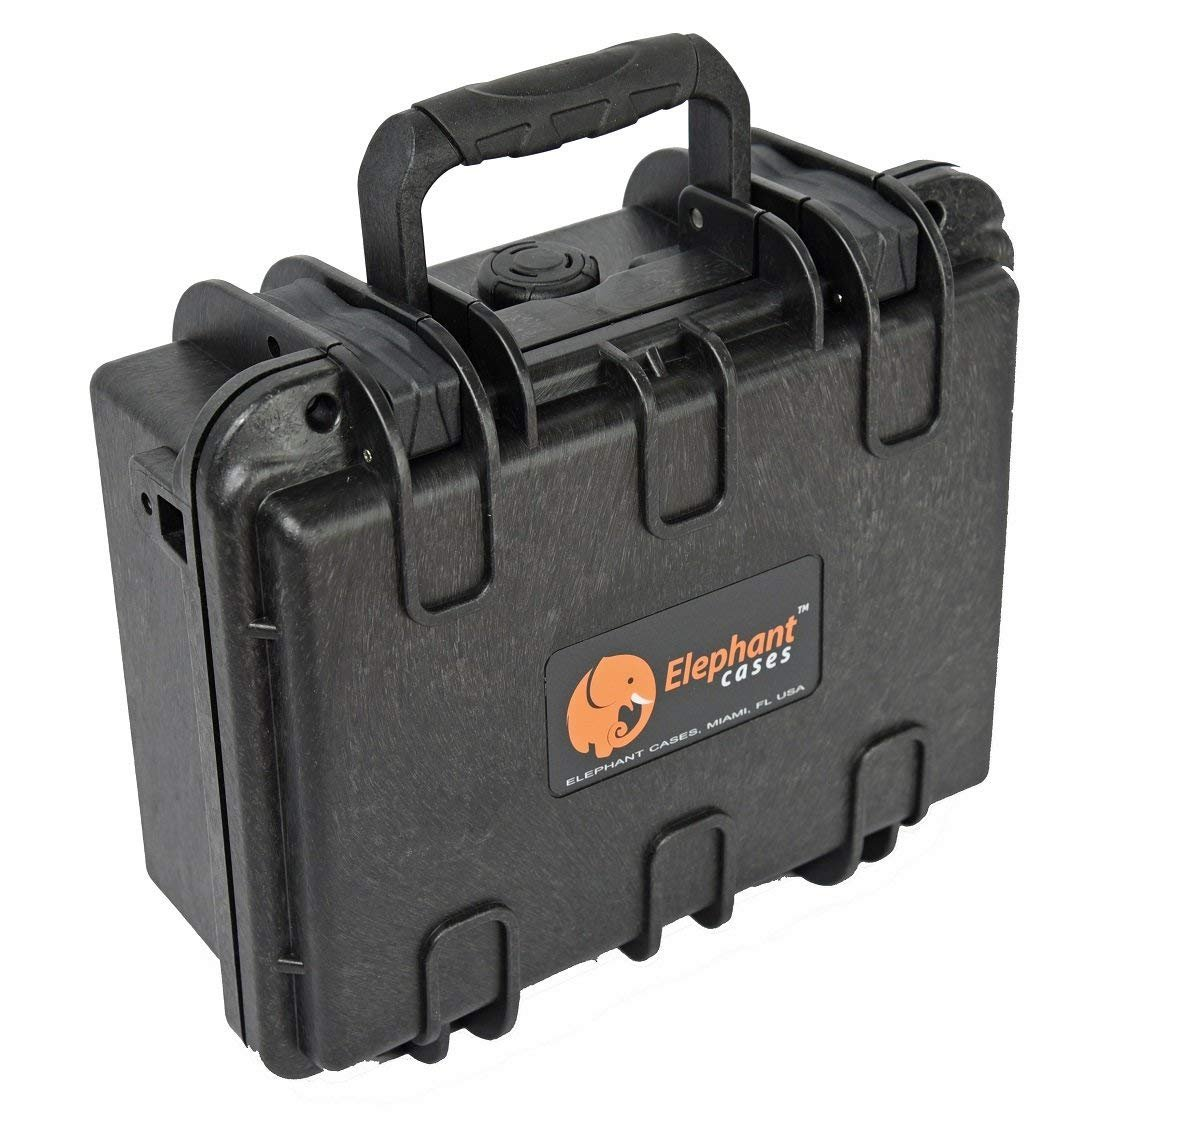 Elephant E120 Case with Foam for Camera, Video, Guns, Test and Metering Equipment Waterproof Hard Plastic Case